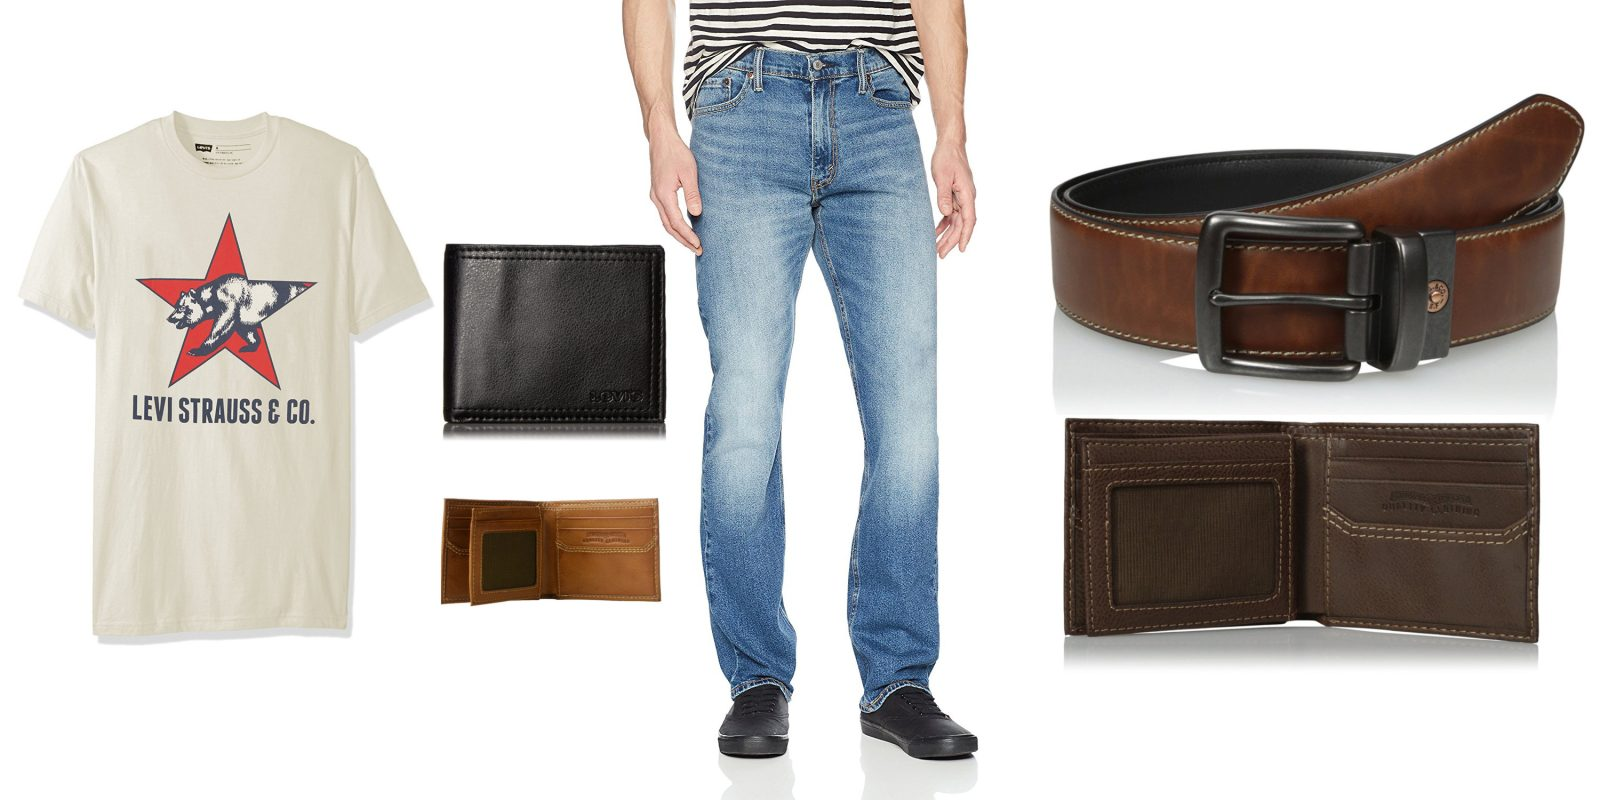 e2c209e7817 Amazon up to 50% off Levi's jeans, t-shirts, belts, wallets and more,  starting from $8 (today only)